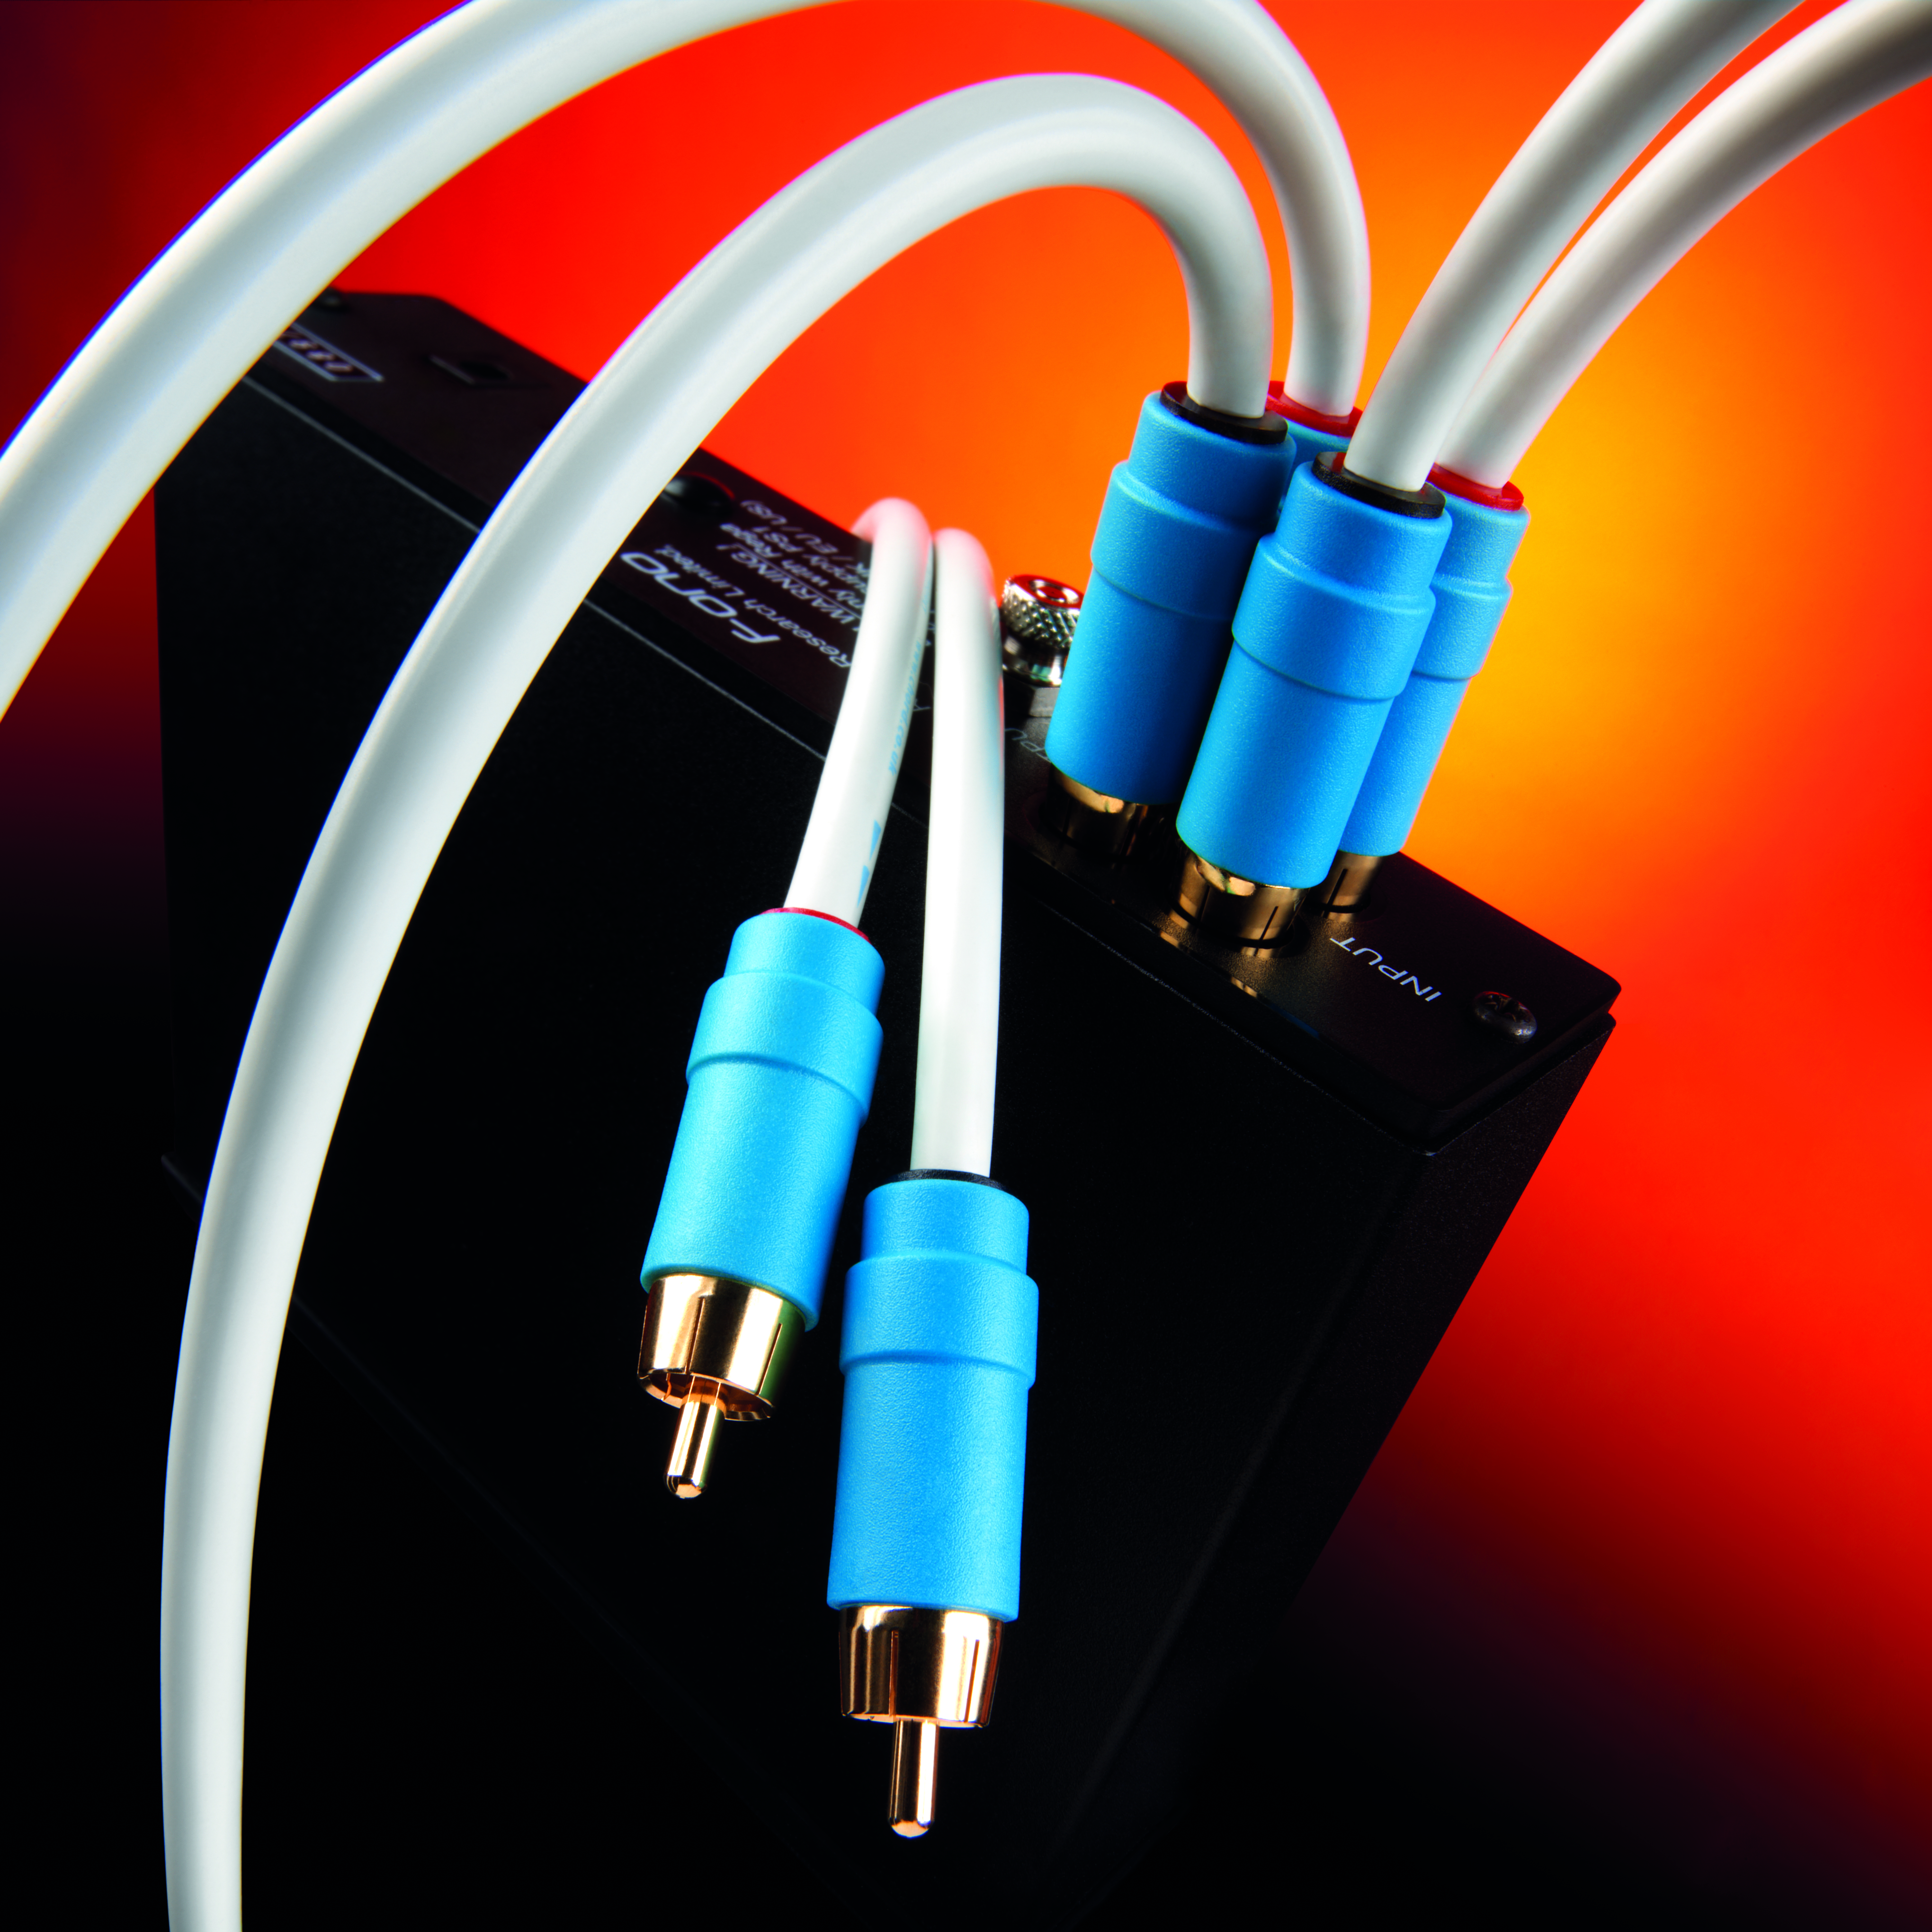 Chord Company C Line Analogue Rca Cable Home Media